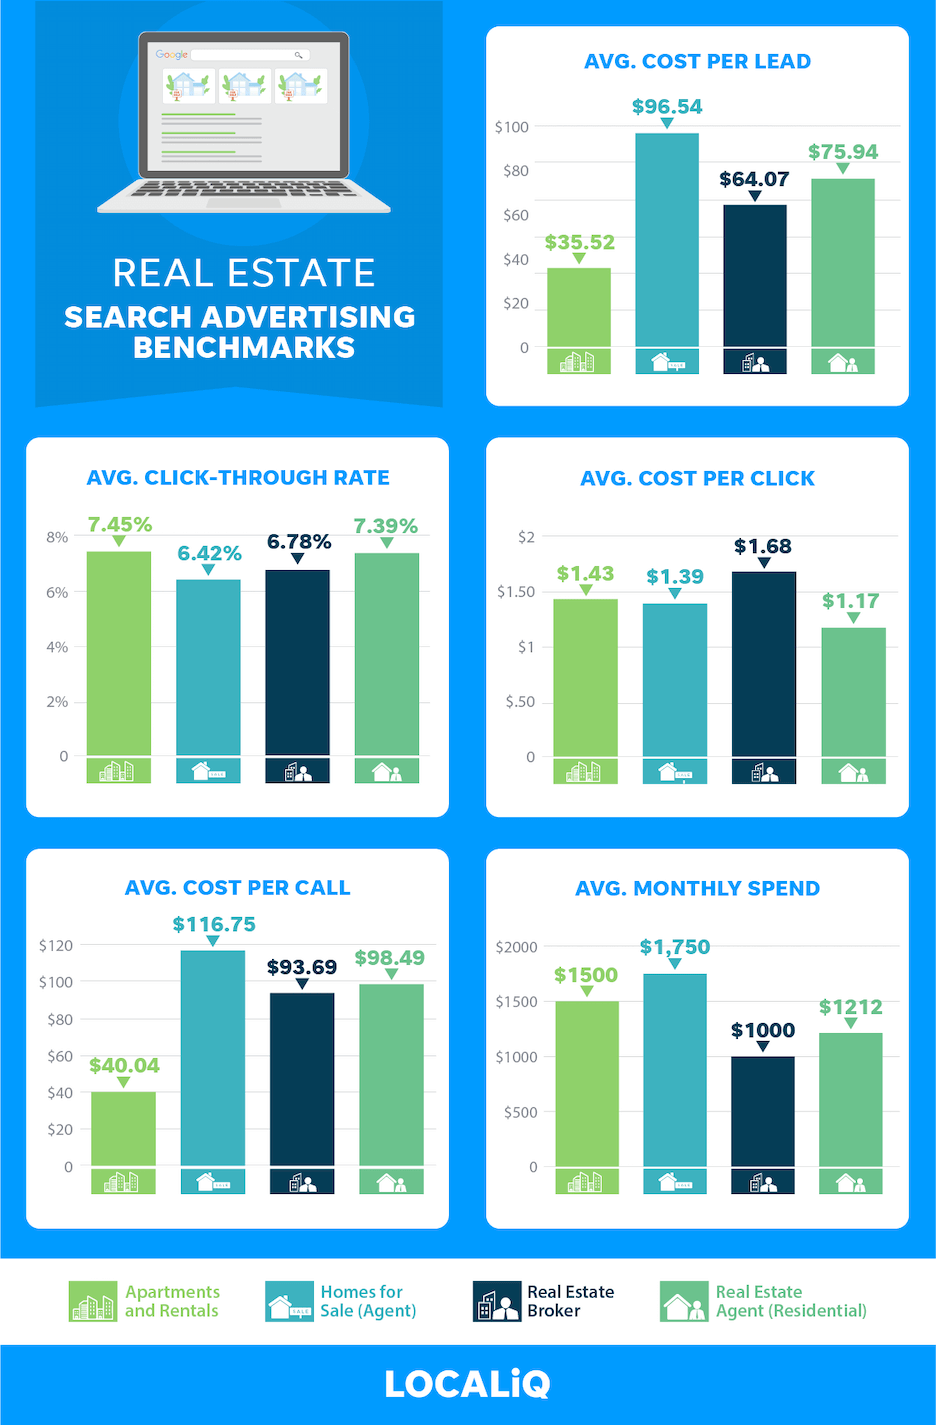 real estate advertising benchmarks 2021 - search